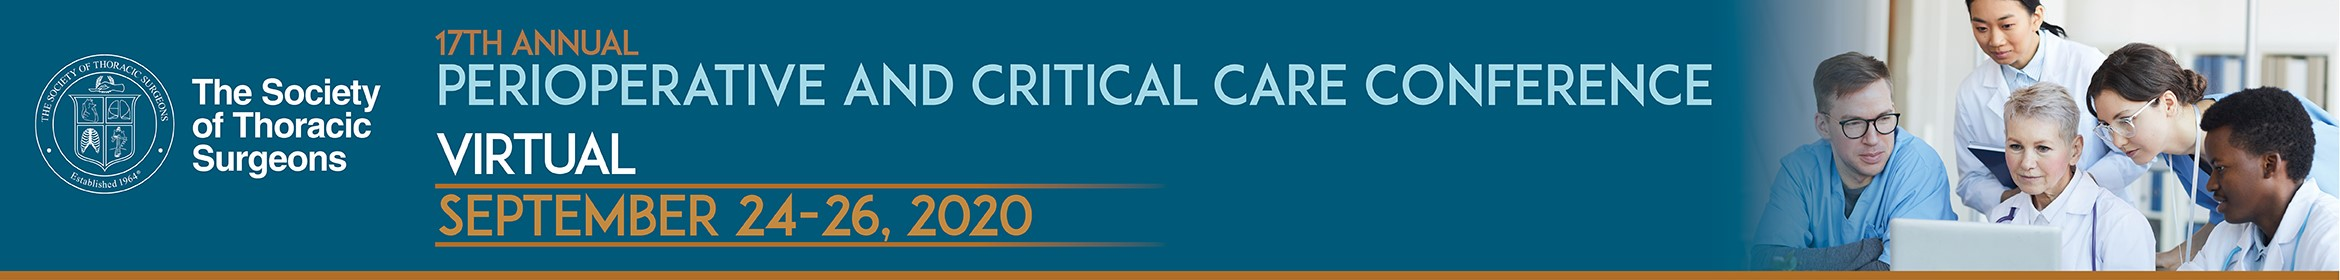 STS Perioperative and Critical Care Conference Main banner